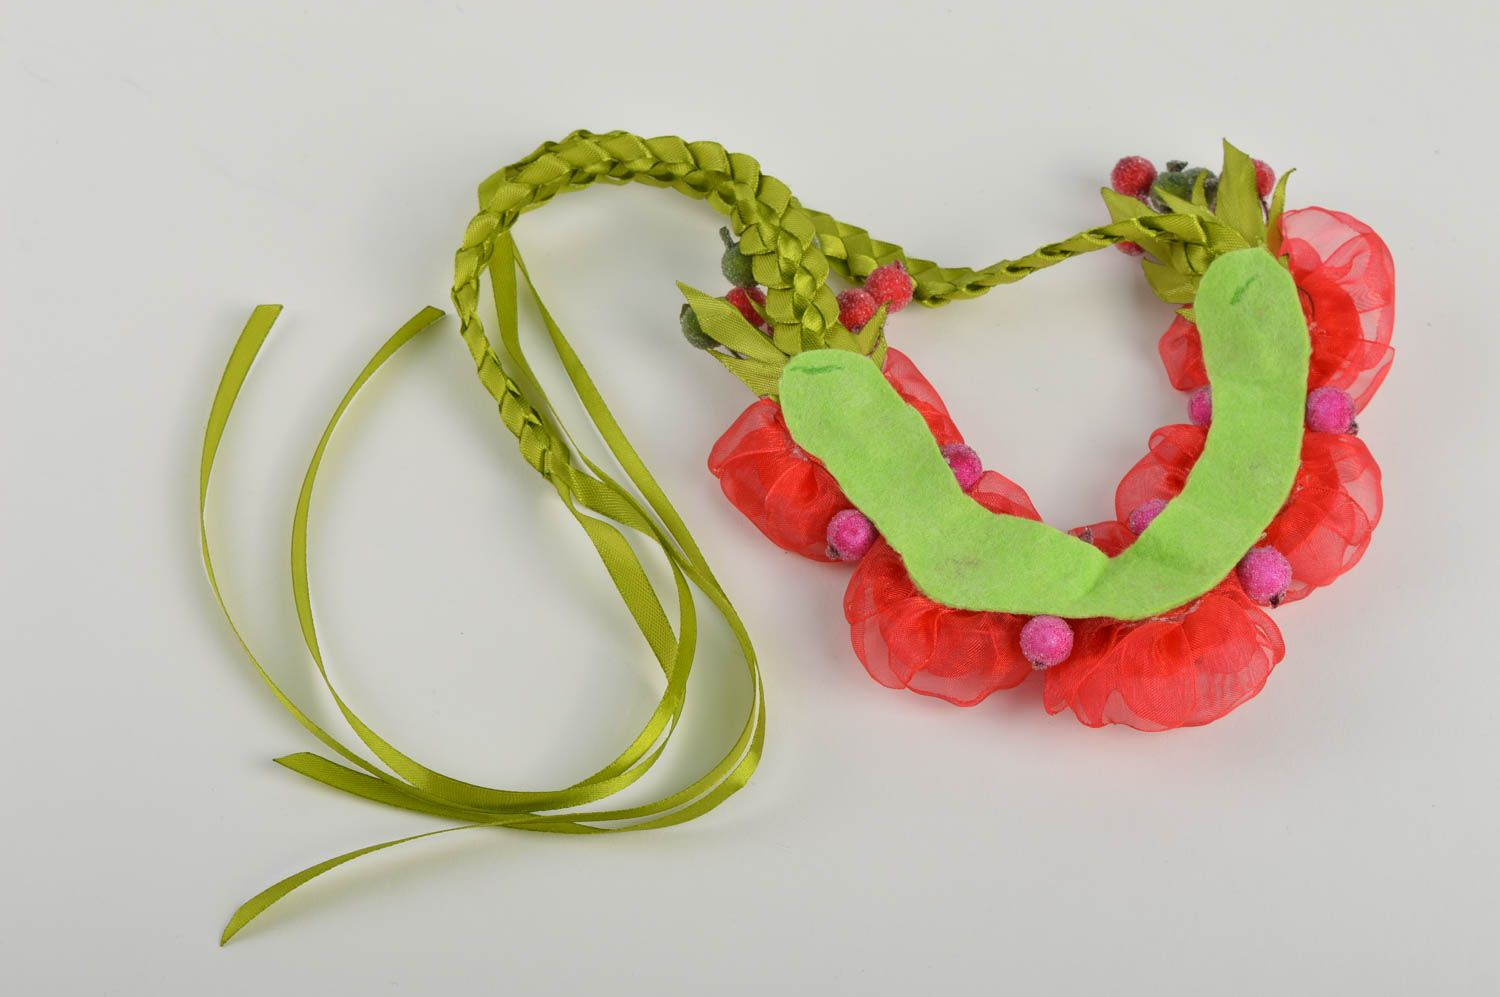 Unusual handmade textile necklace costume jewelry fashion accessories gift ideas photo 4